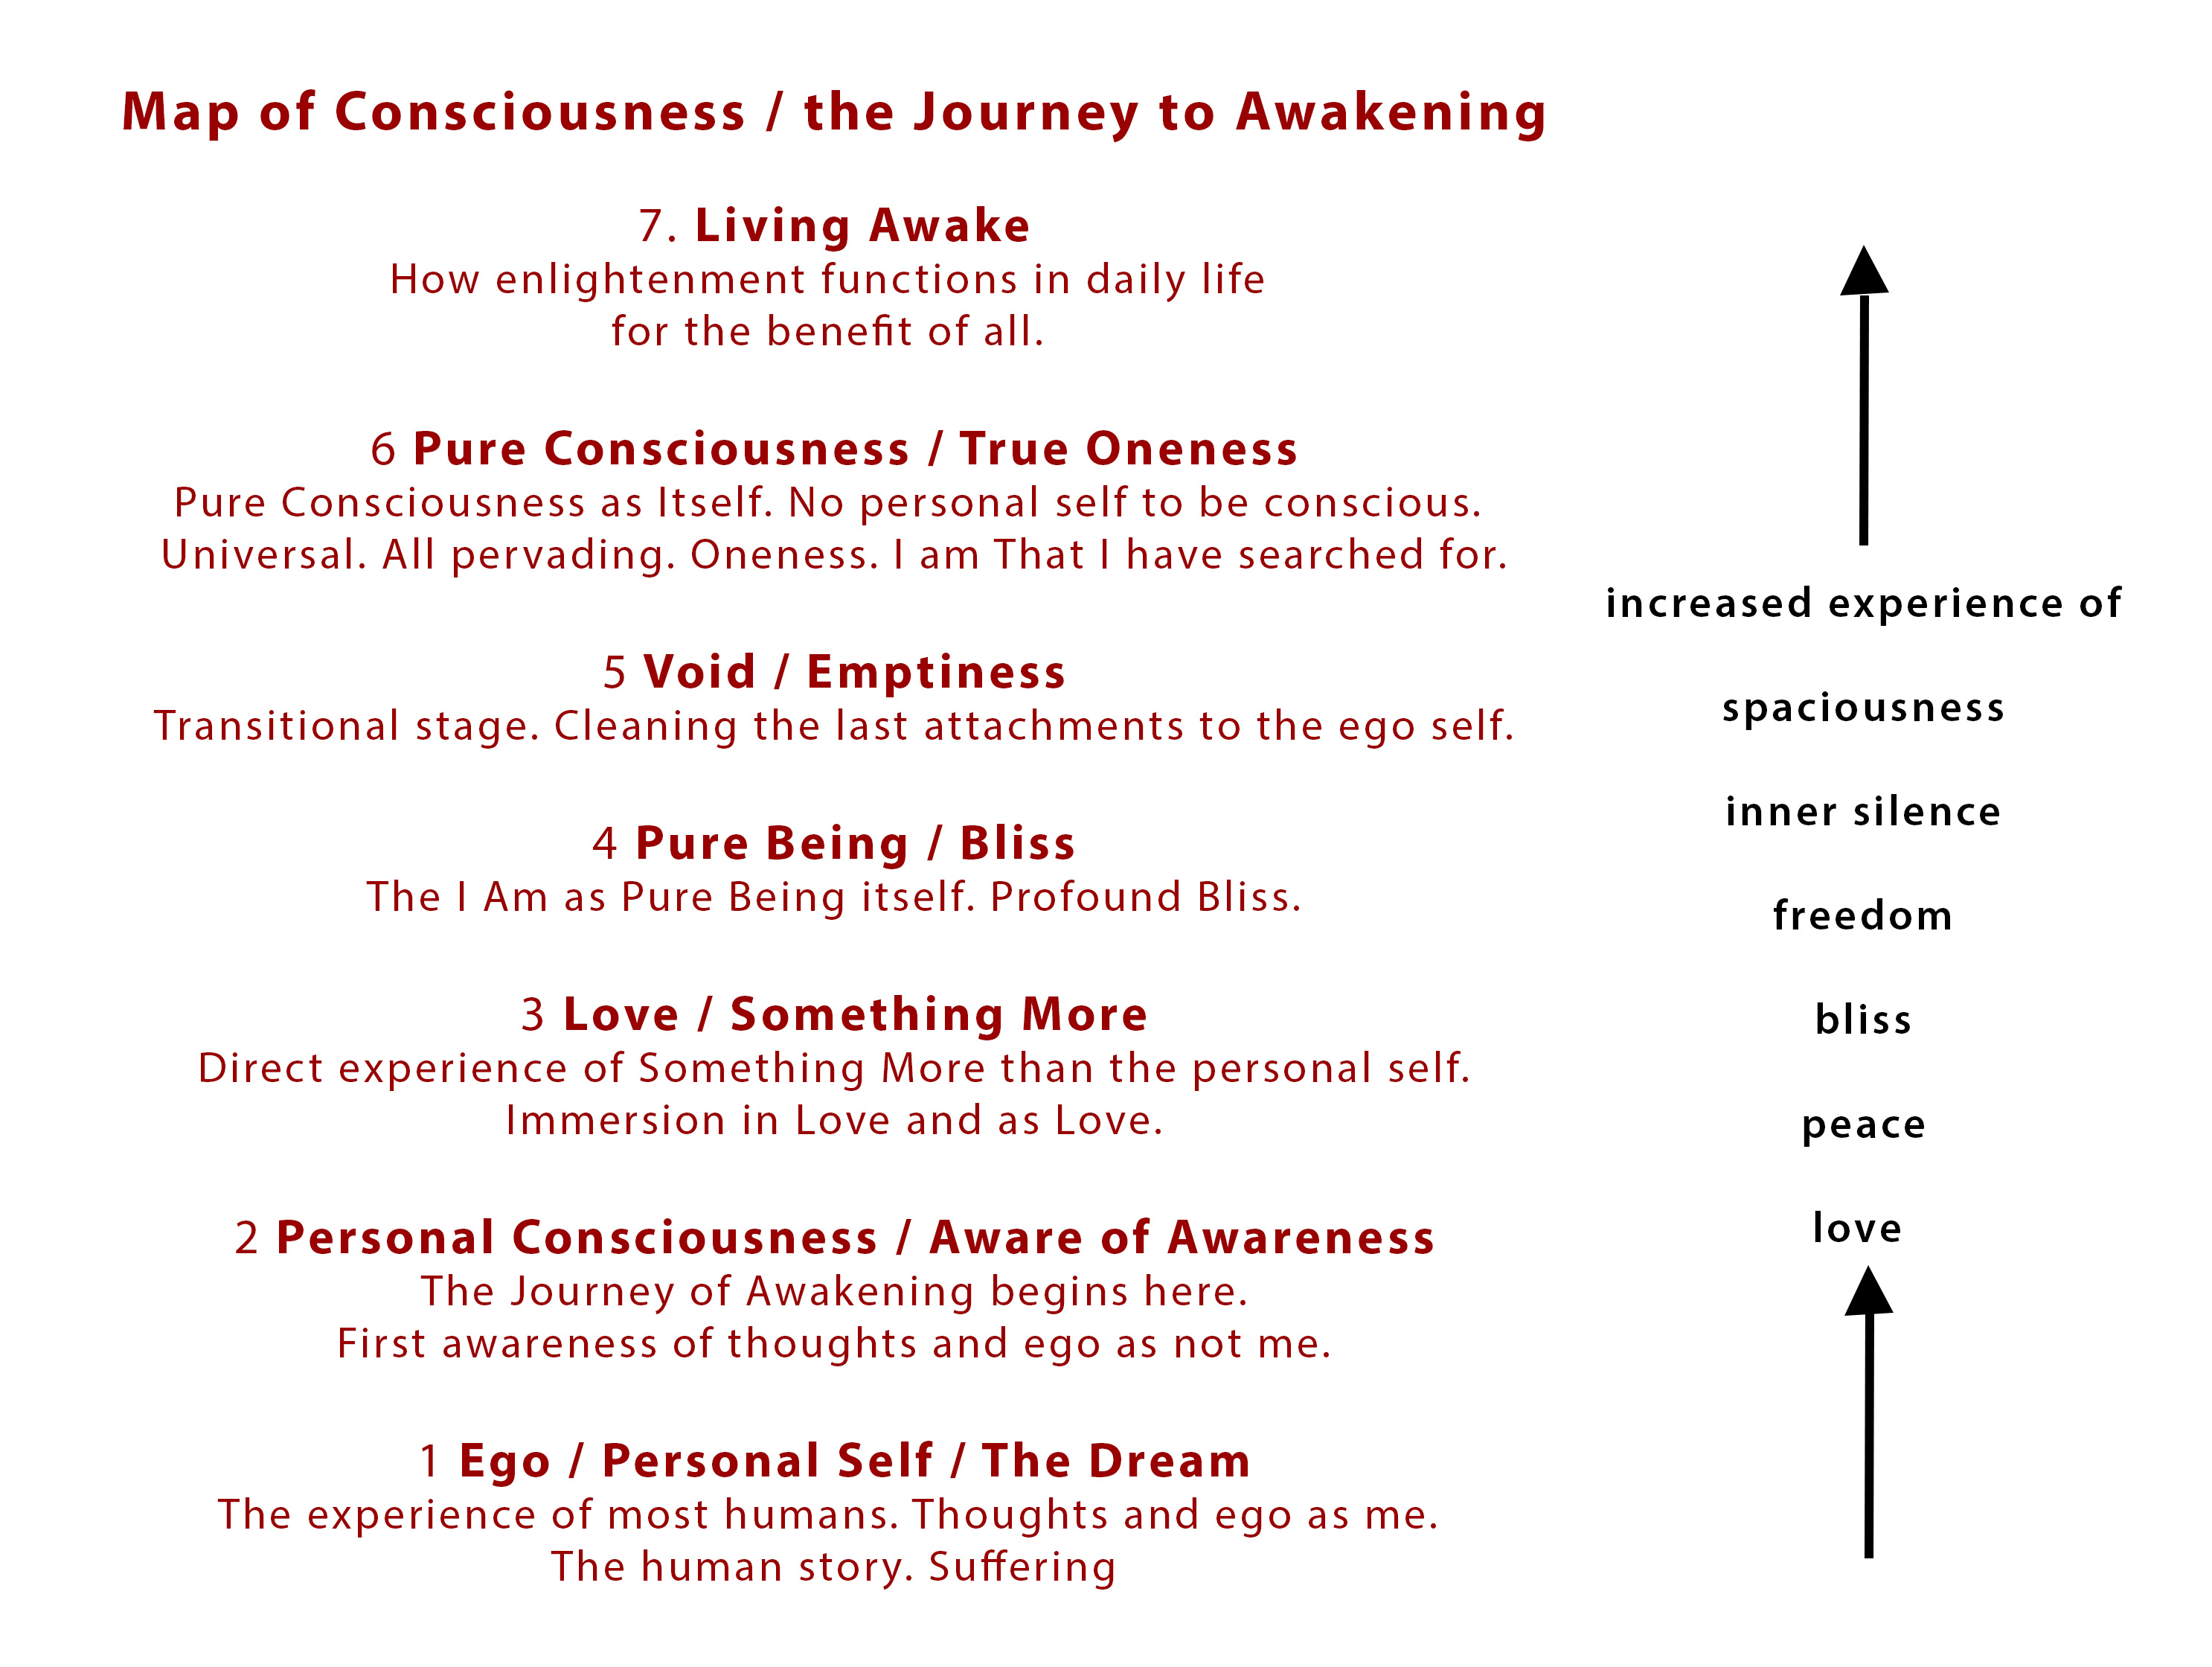 Click here to download a PDF file of the Map of Consciousness